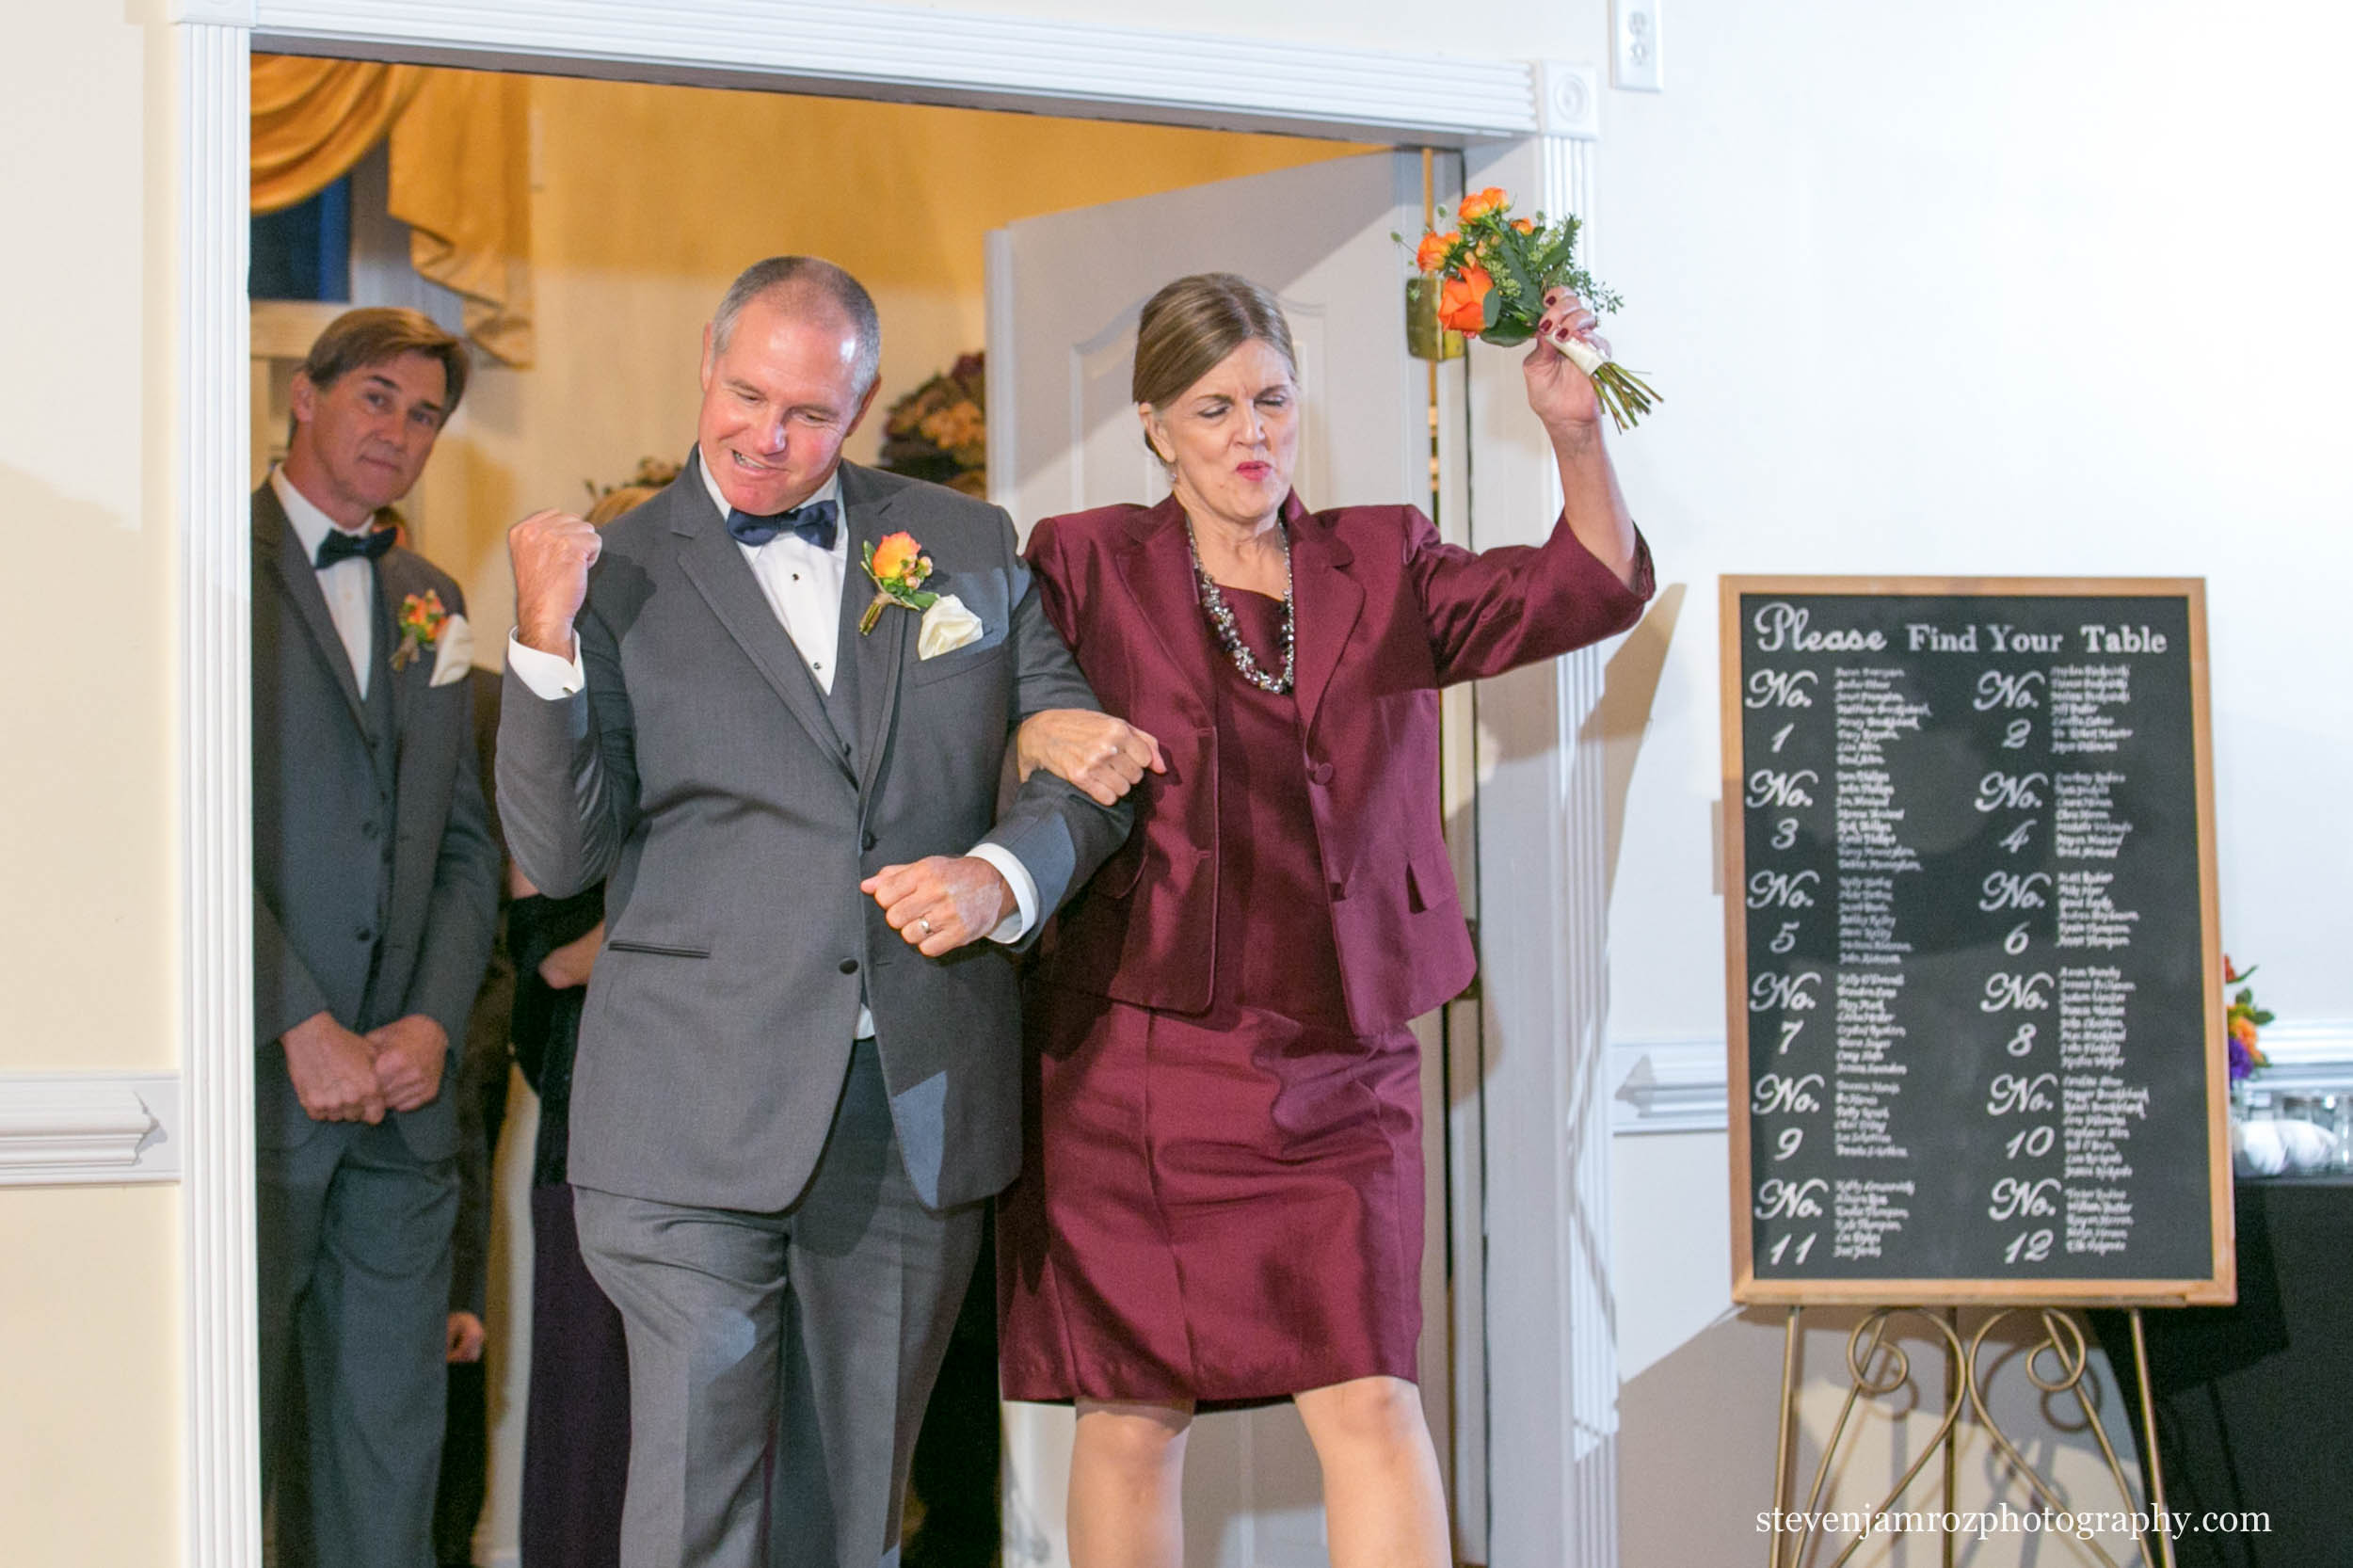 fist-pump-grand-ballroom-entrance-hudson-manor-estate-steven-jamroz-photography-0553.jpg